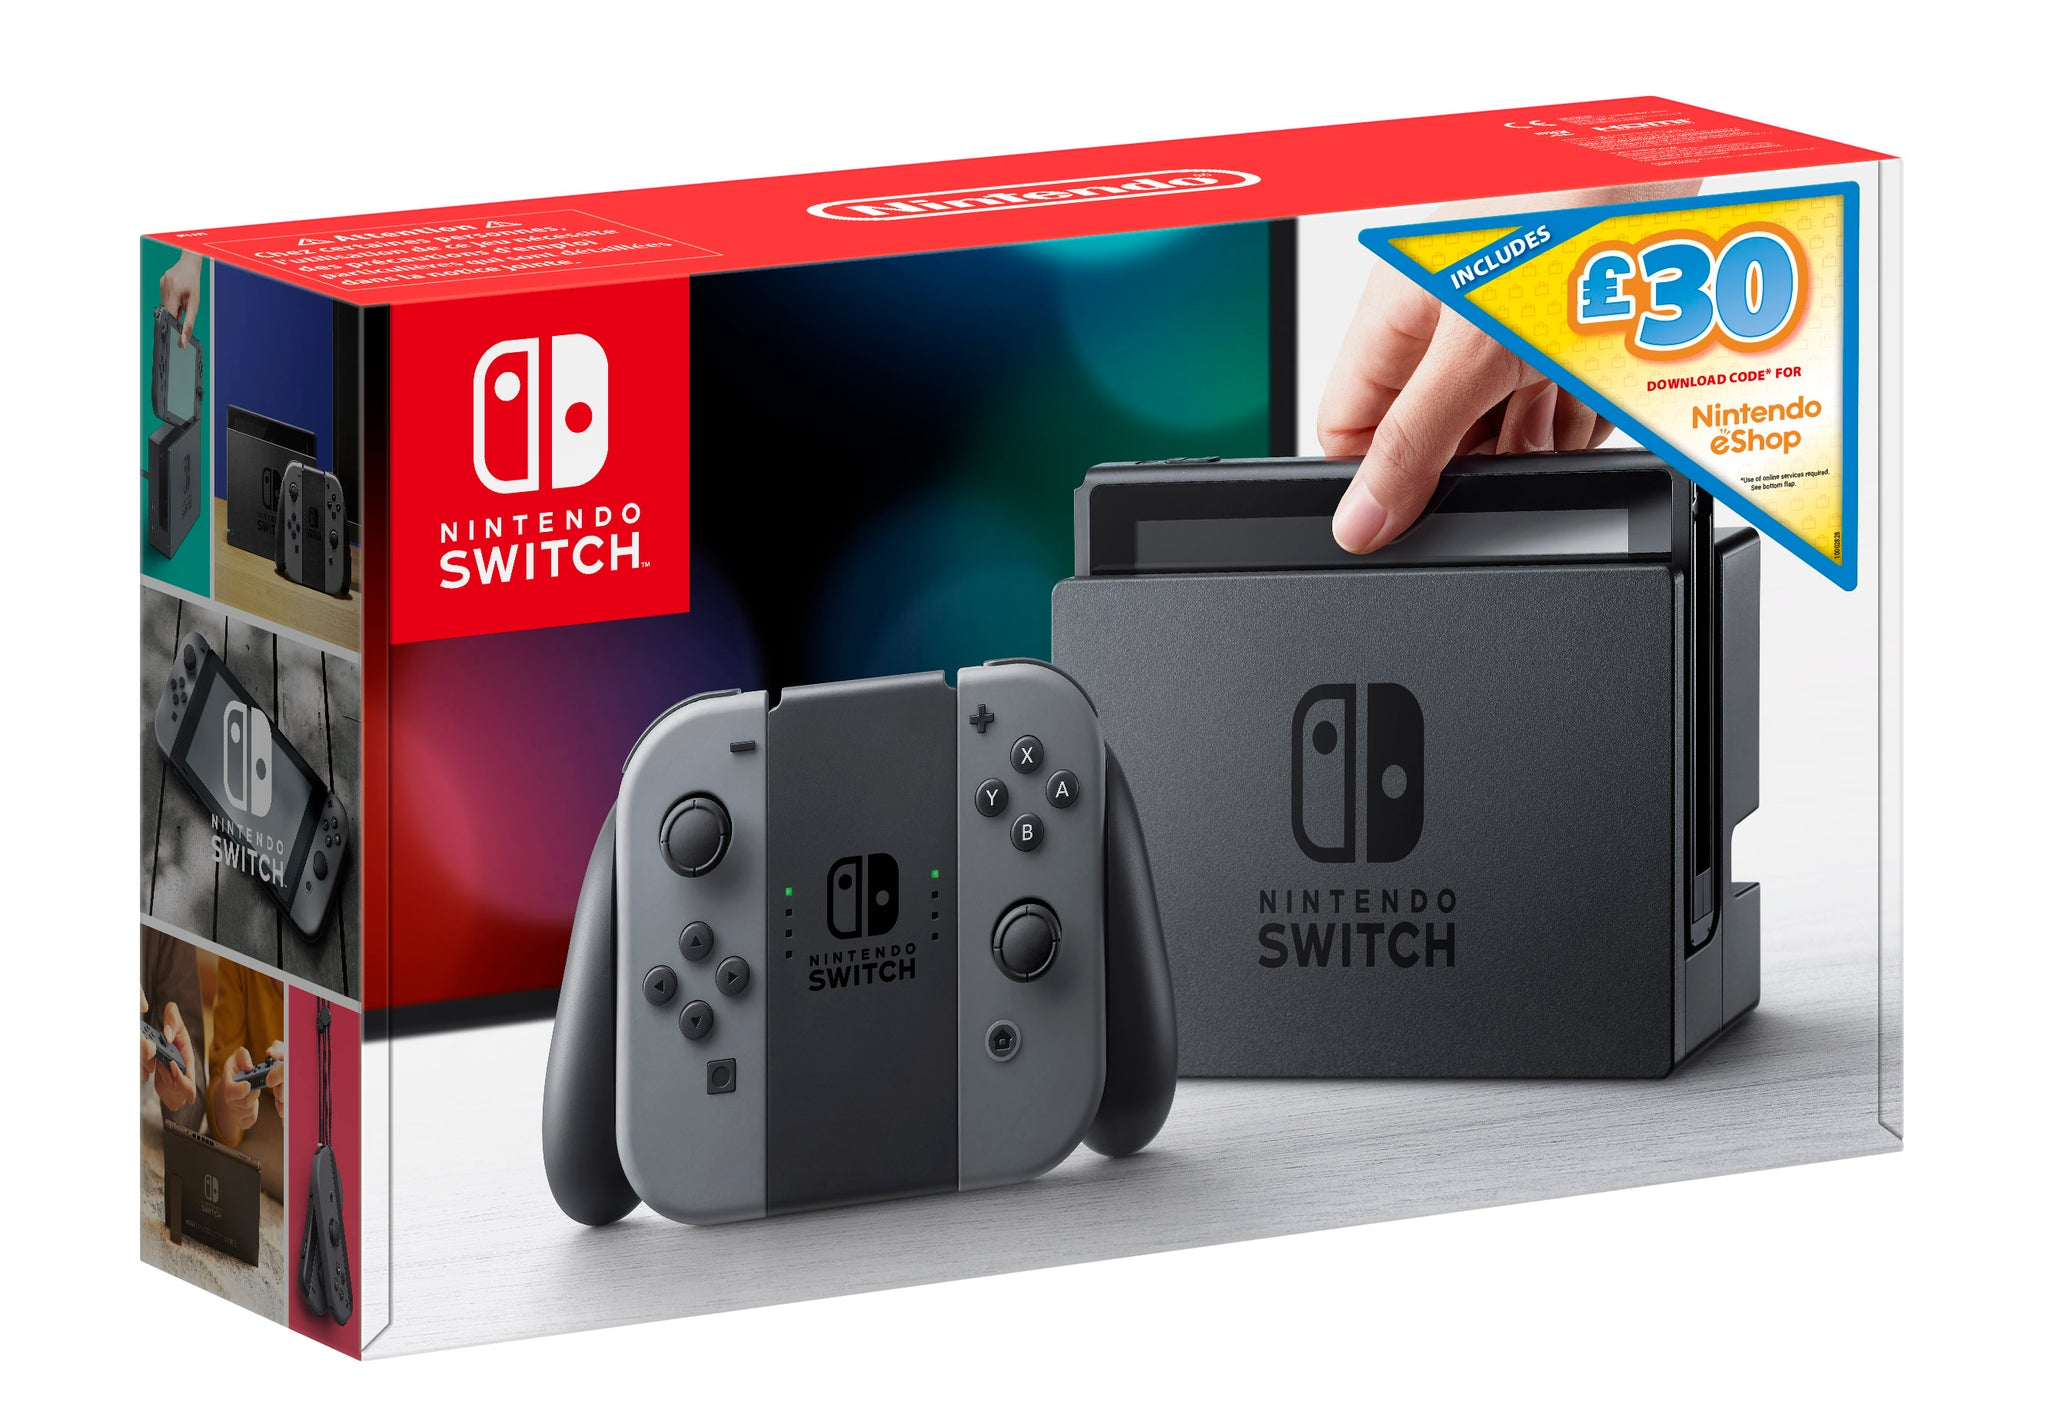 Limited Edition Nintendo Switch Bundle with £30 eShop Credit